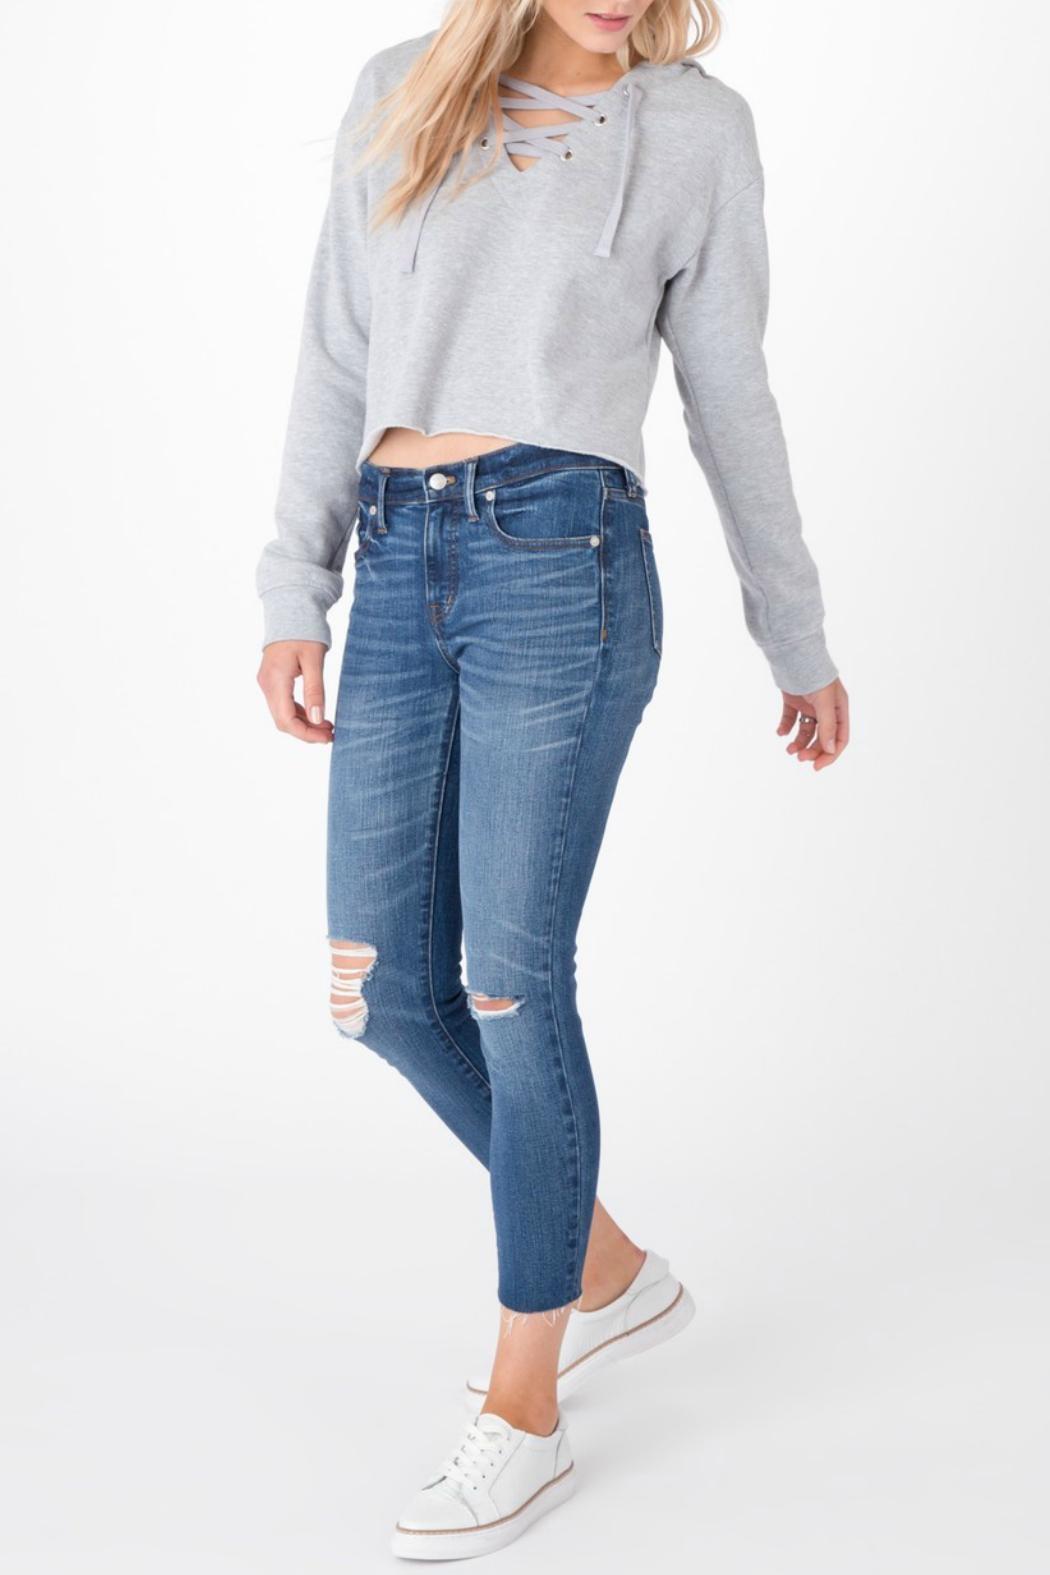 z supply Cropped Lace Up Hoodie - Main Image